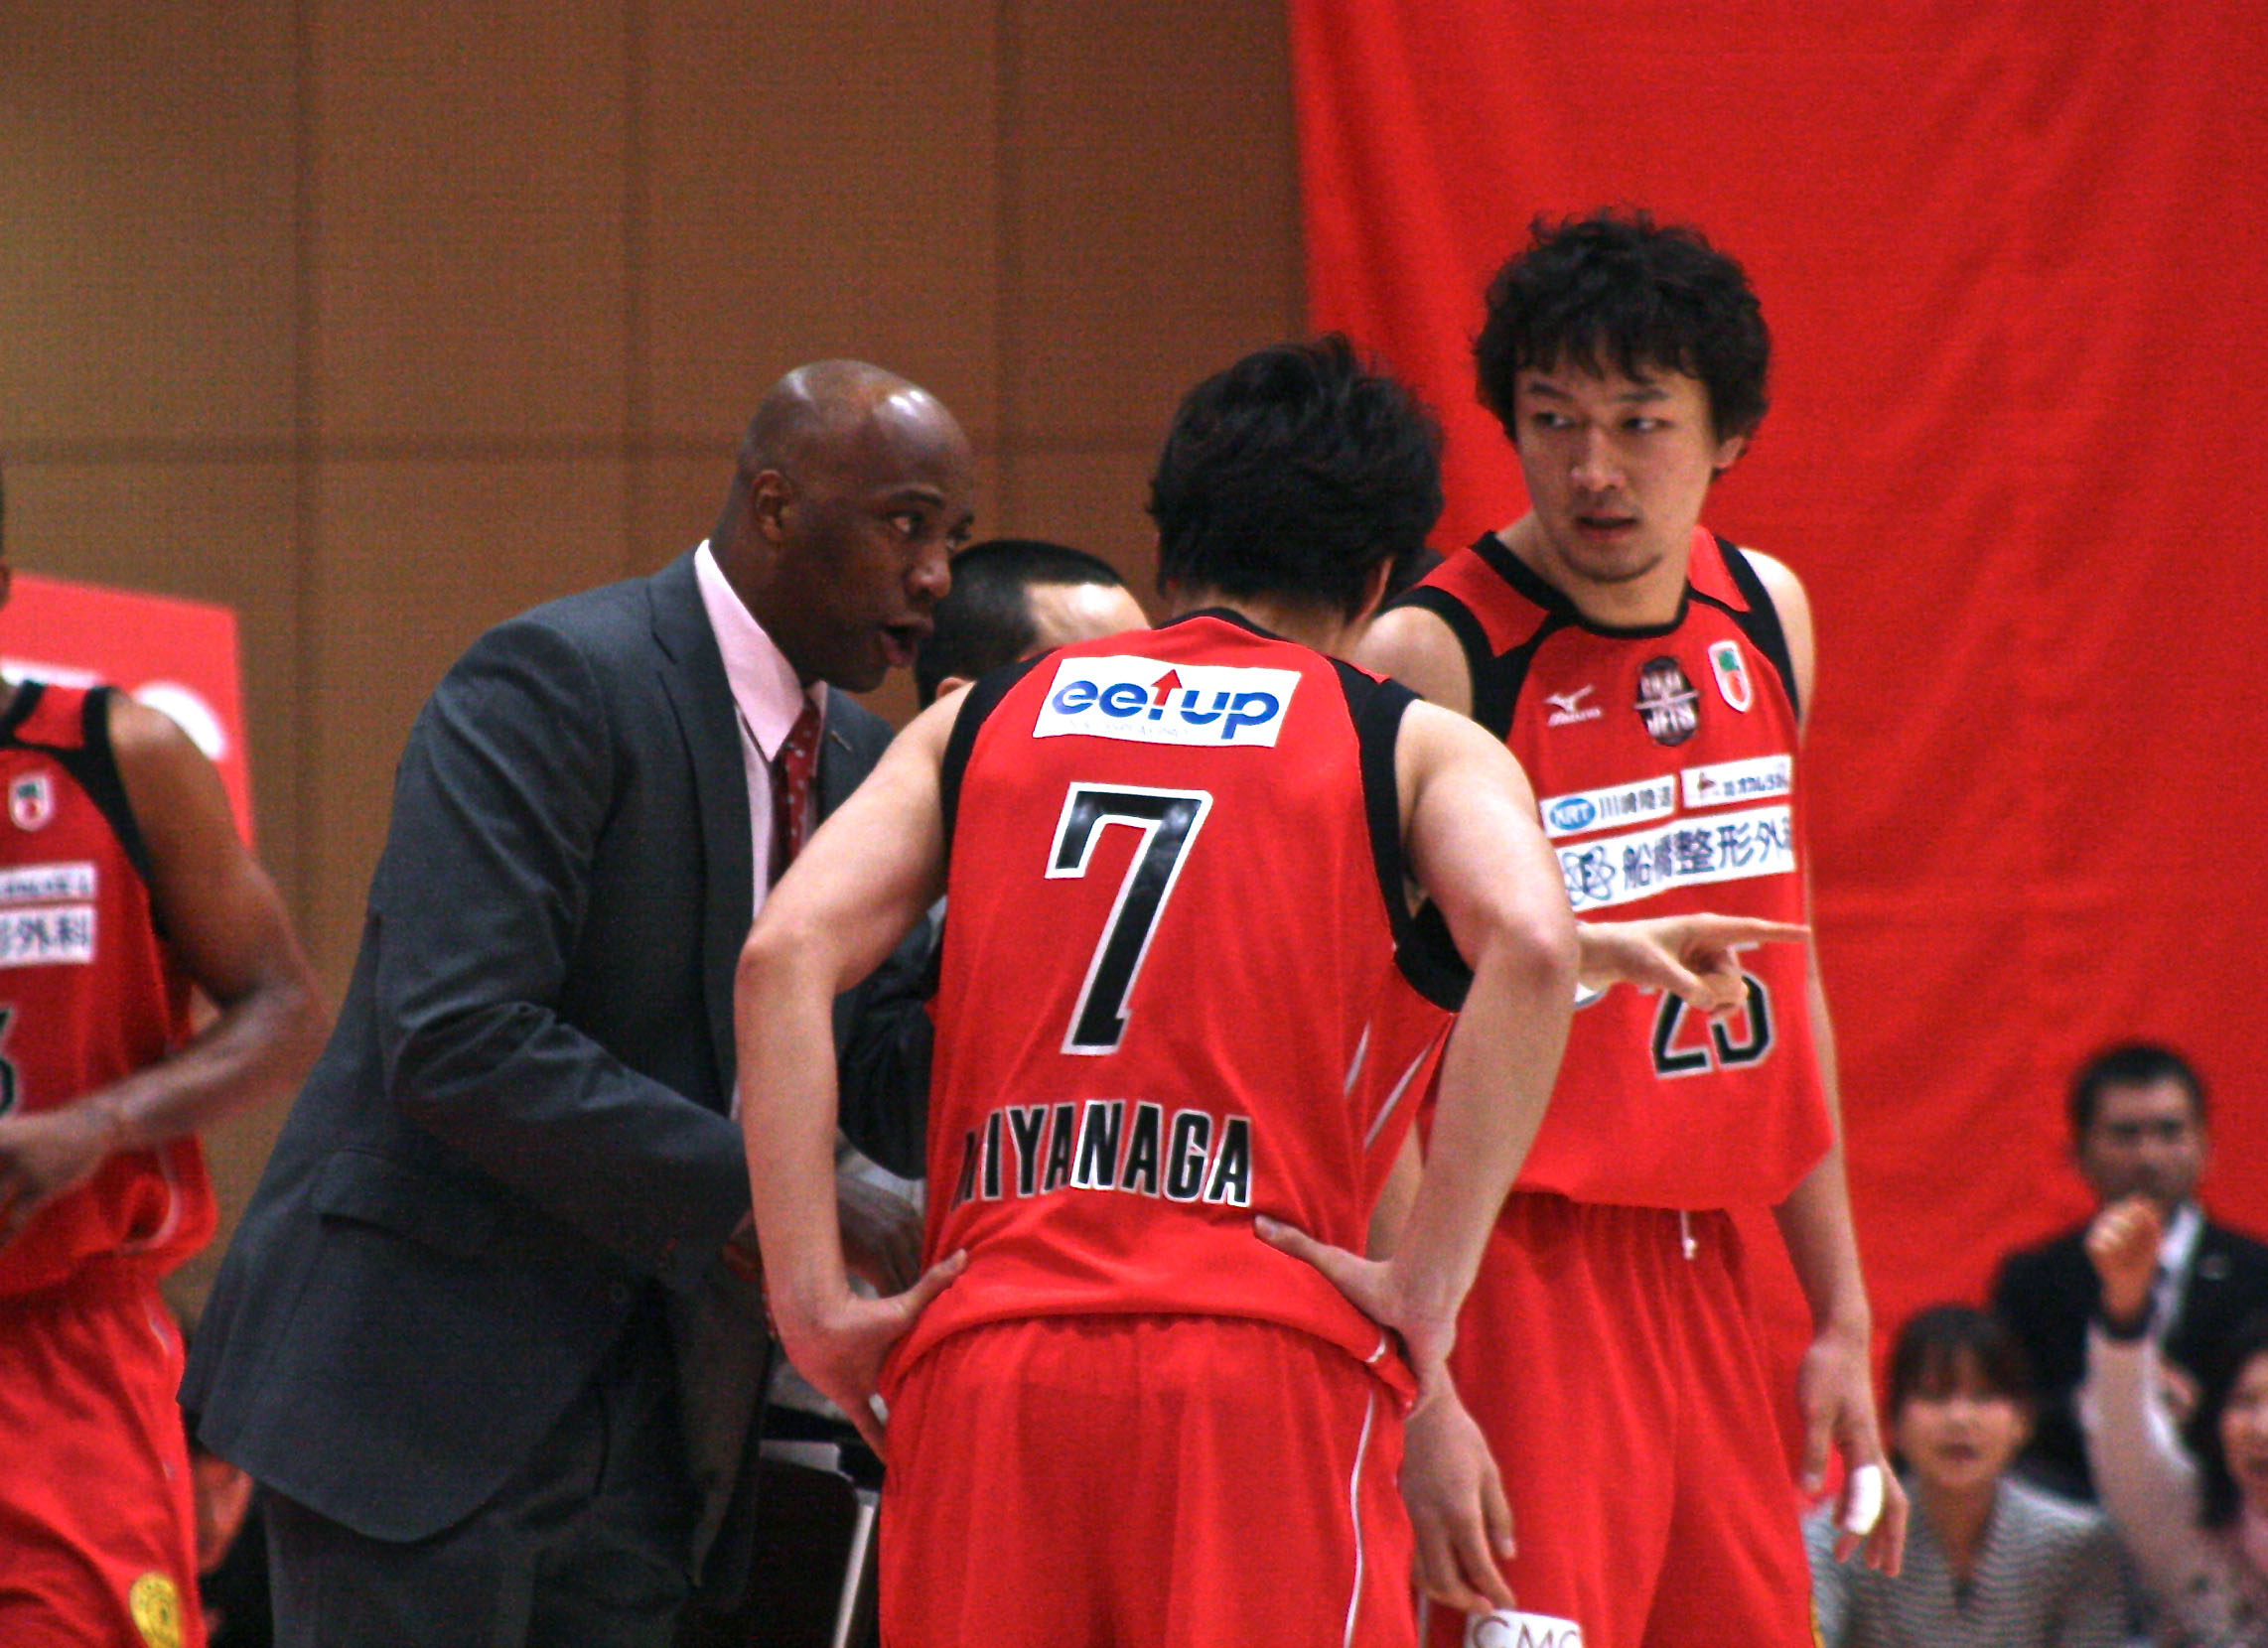 Tough sledding: Chiba Jets coach Reggie Geary and his players are still trying to adjust to life in the NBL. | KAZ NAGATSUKA